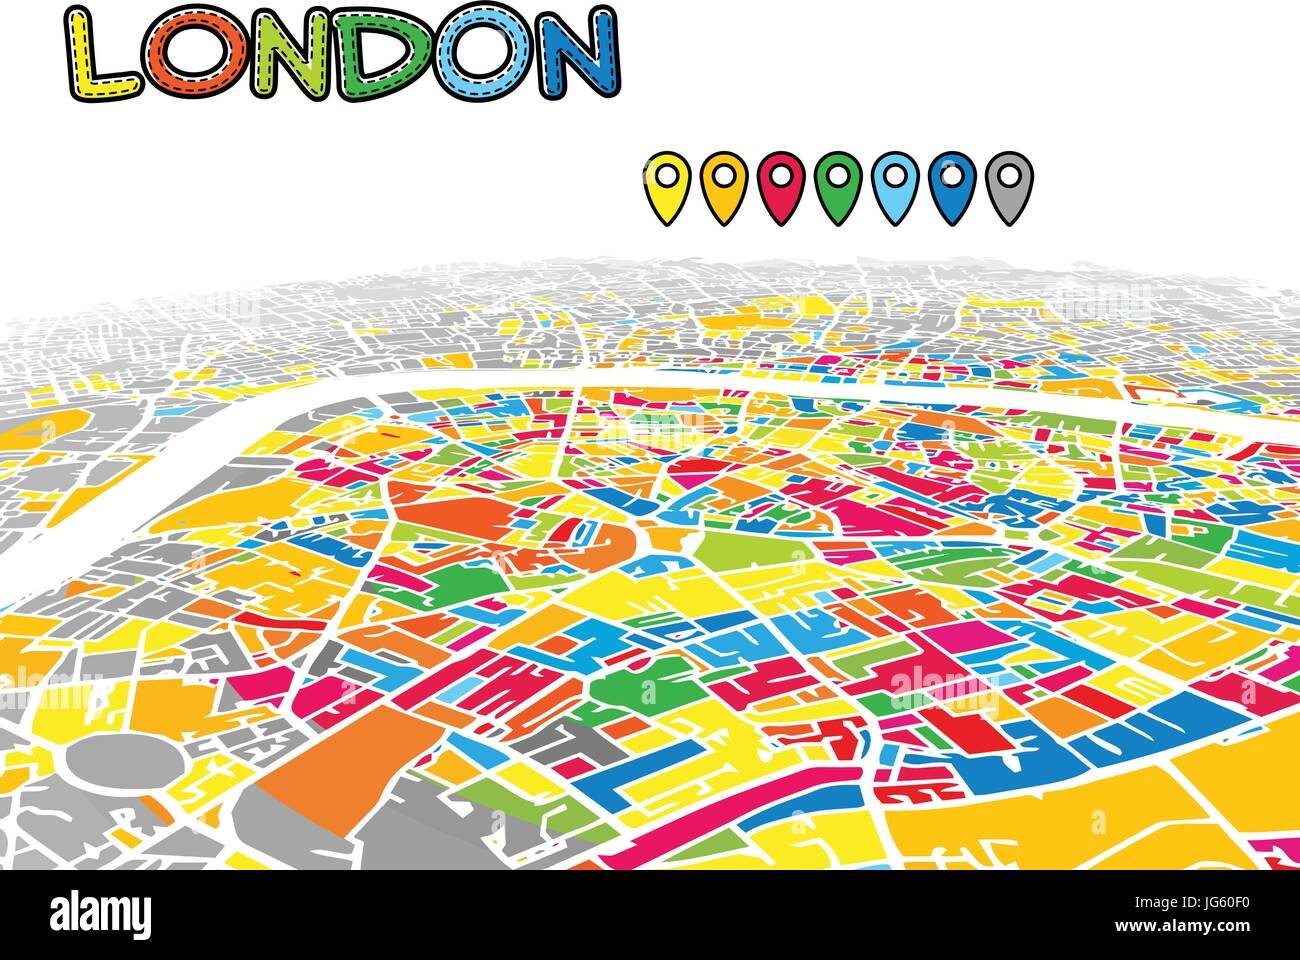 london united kingdom downtown 3d vector map of famous streets bright foreground full of colors white streets waterways and grey background areal